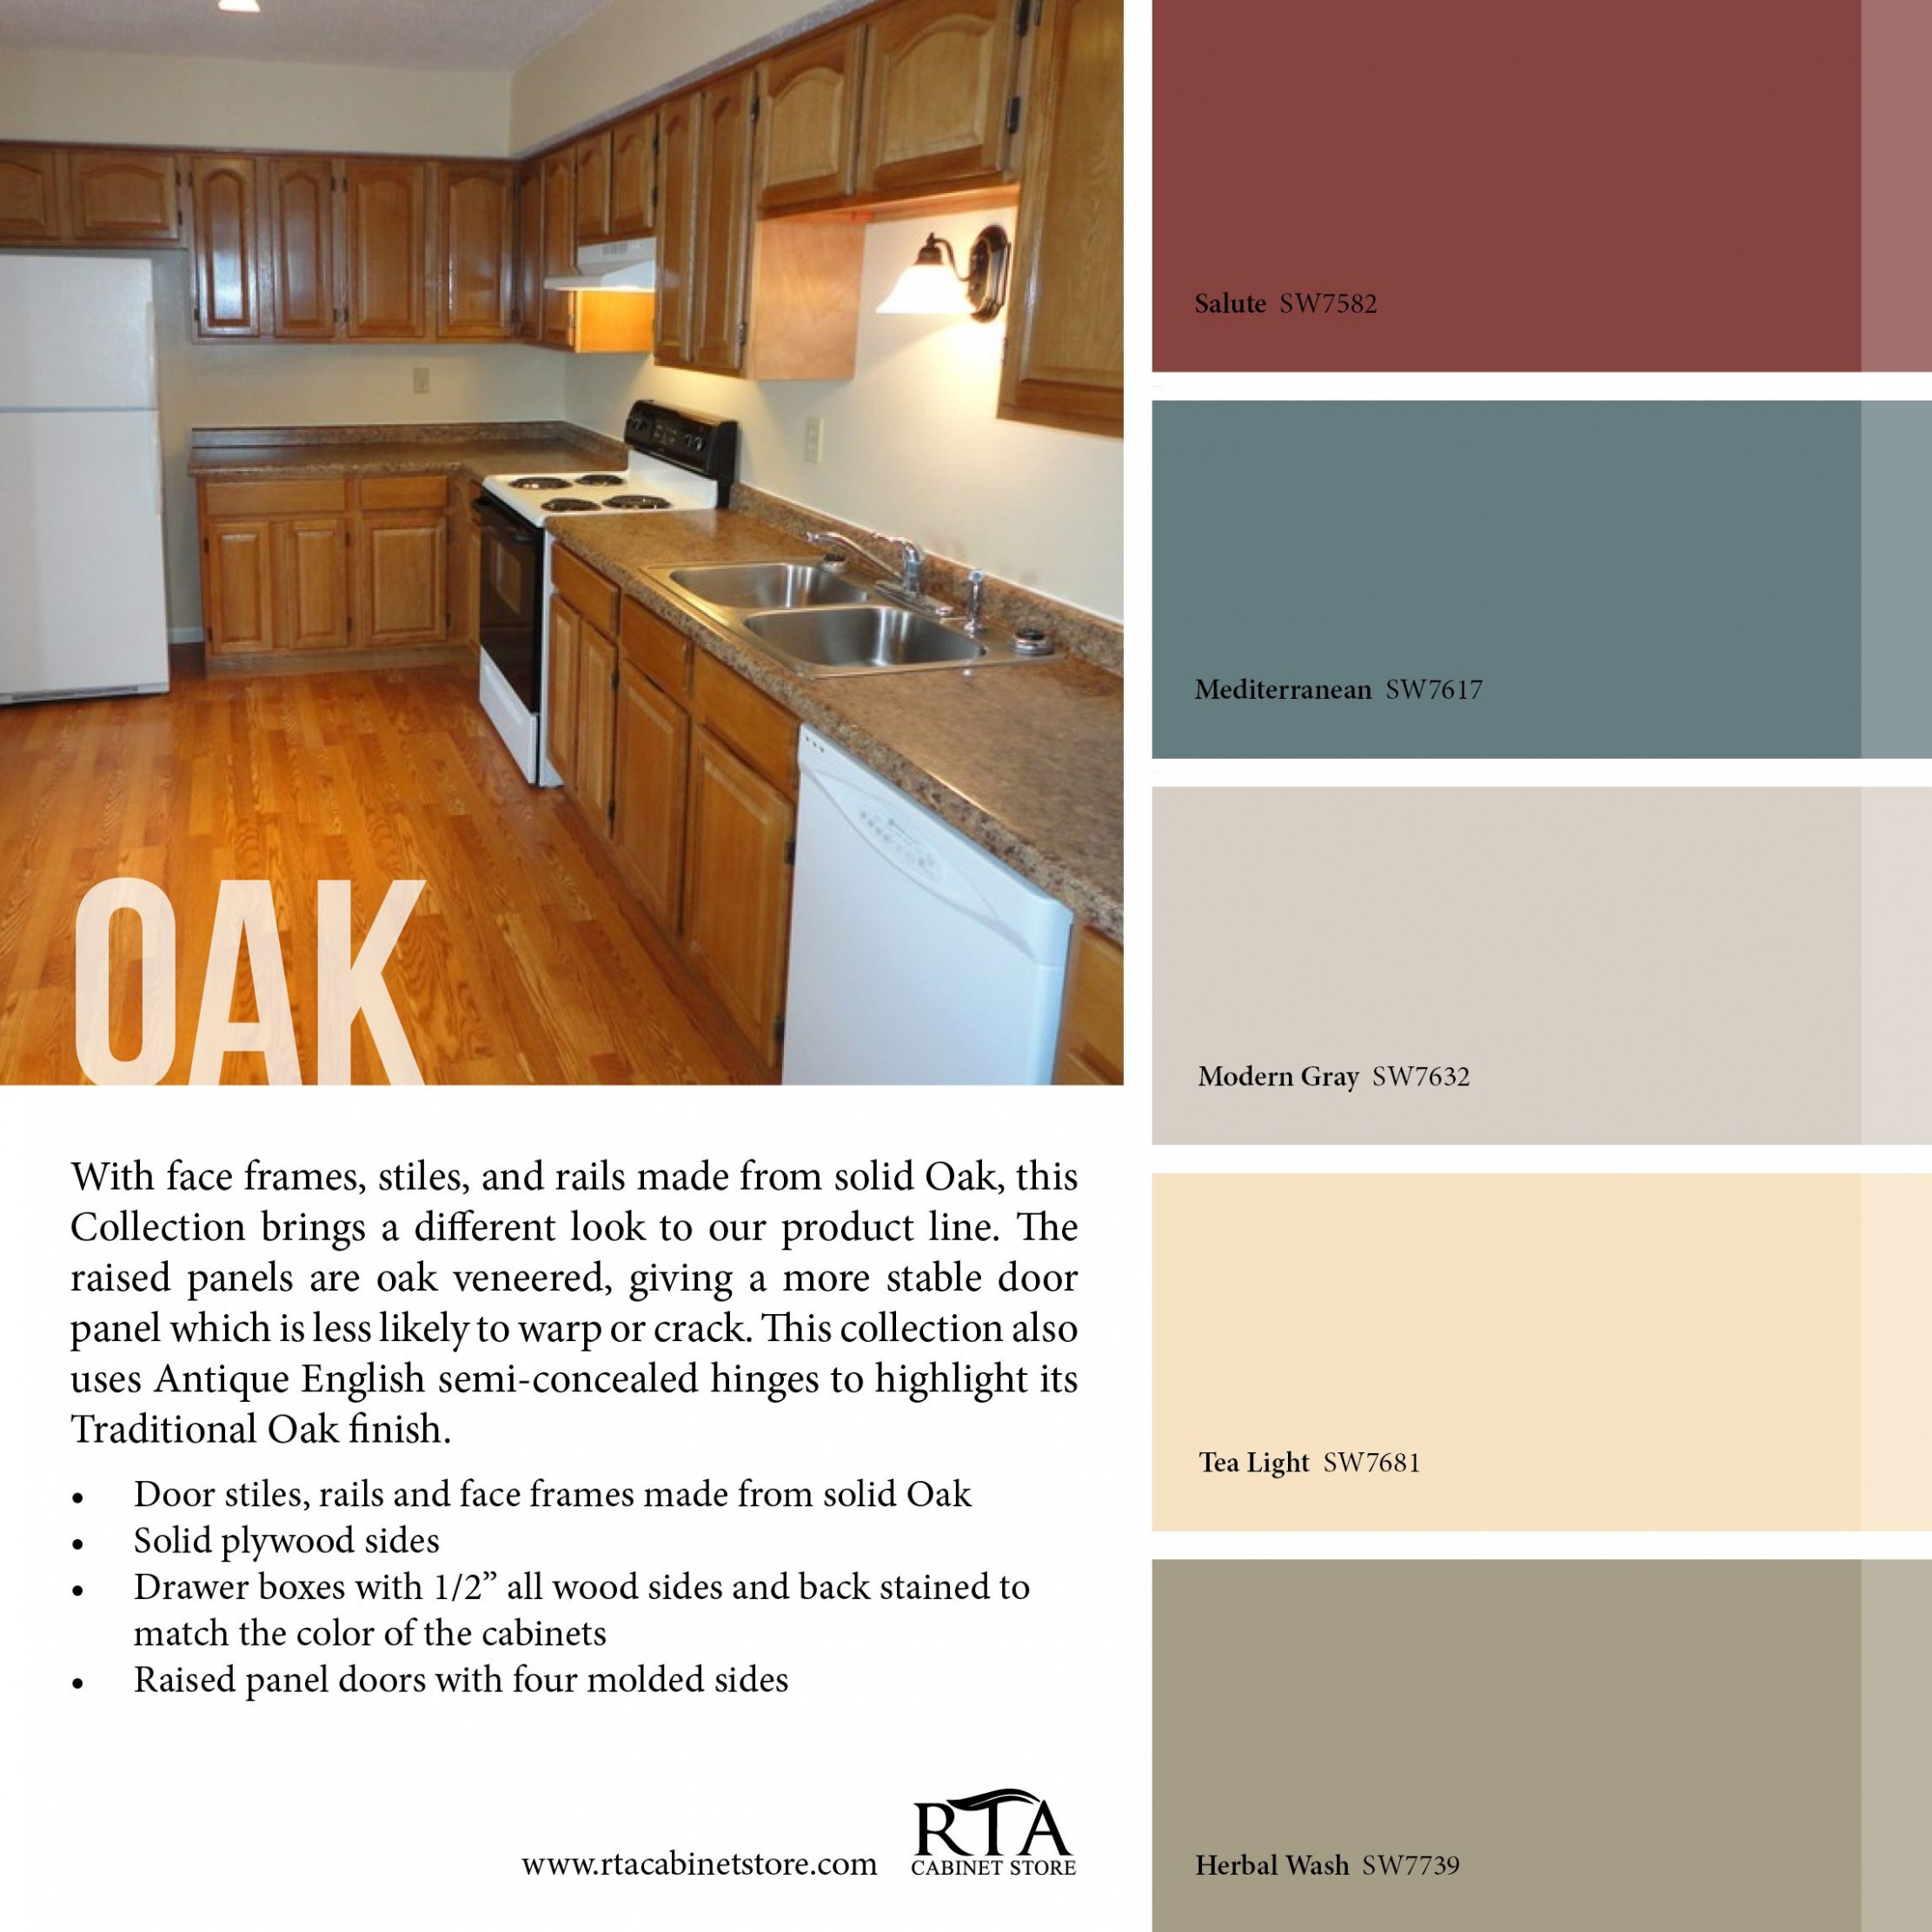 Color palette to go with oak kitchen cabinet line- for those with  - Kitchen Cabinet Accent Paint